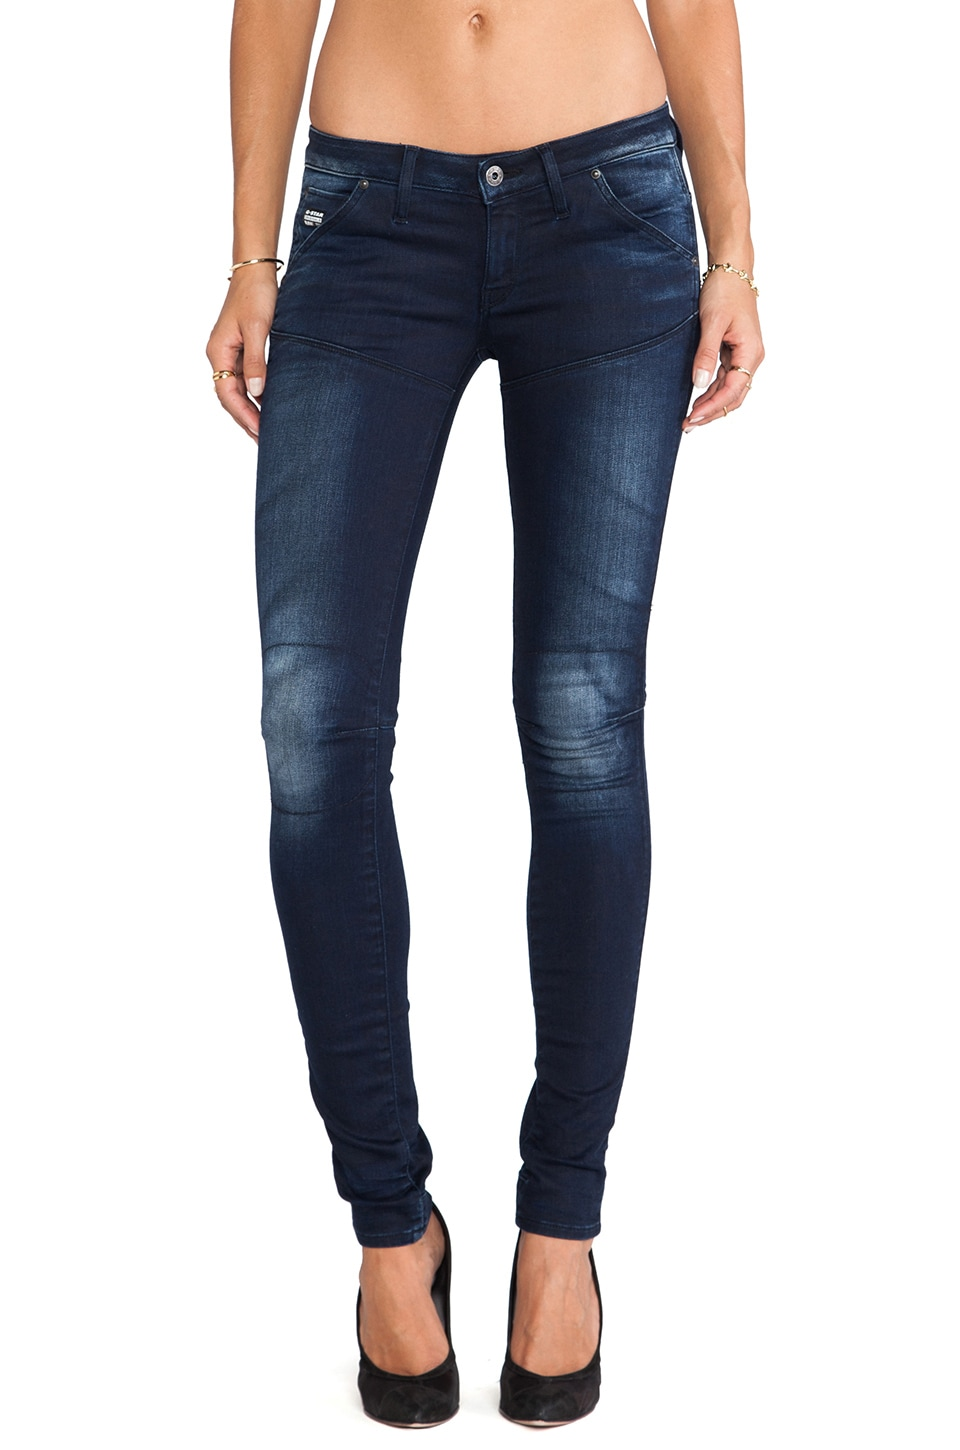 G-Star 5620 Slim Tapered in Slander Navy Super Stretch Dark Aged